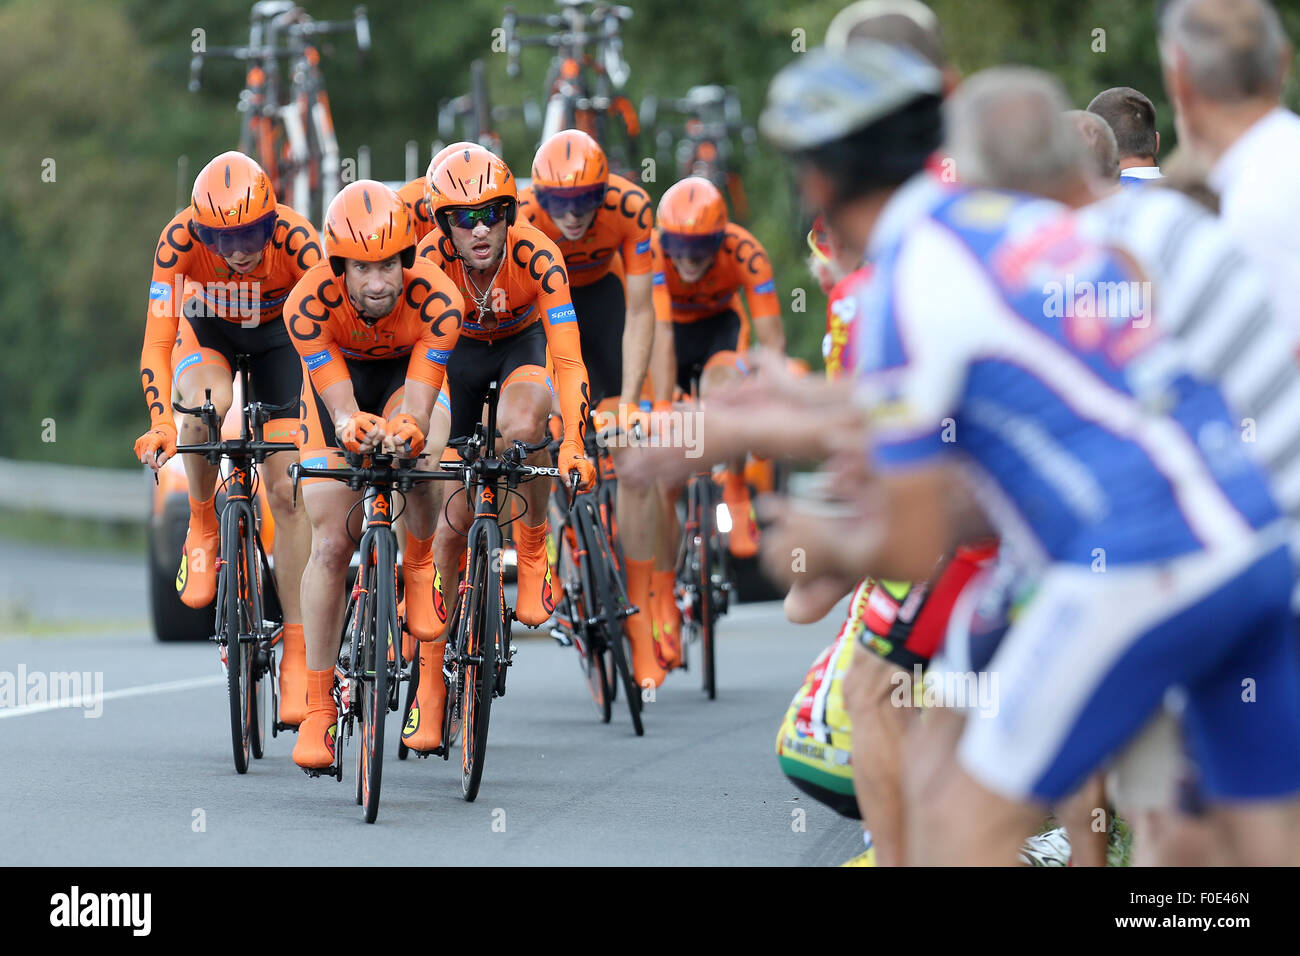 cef2d8404 CCC Sprandi Polkowice team competes during the Czech Cycling Tour 2015 in 1st  stage team time